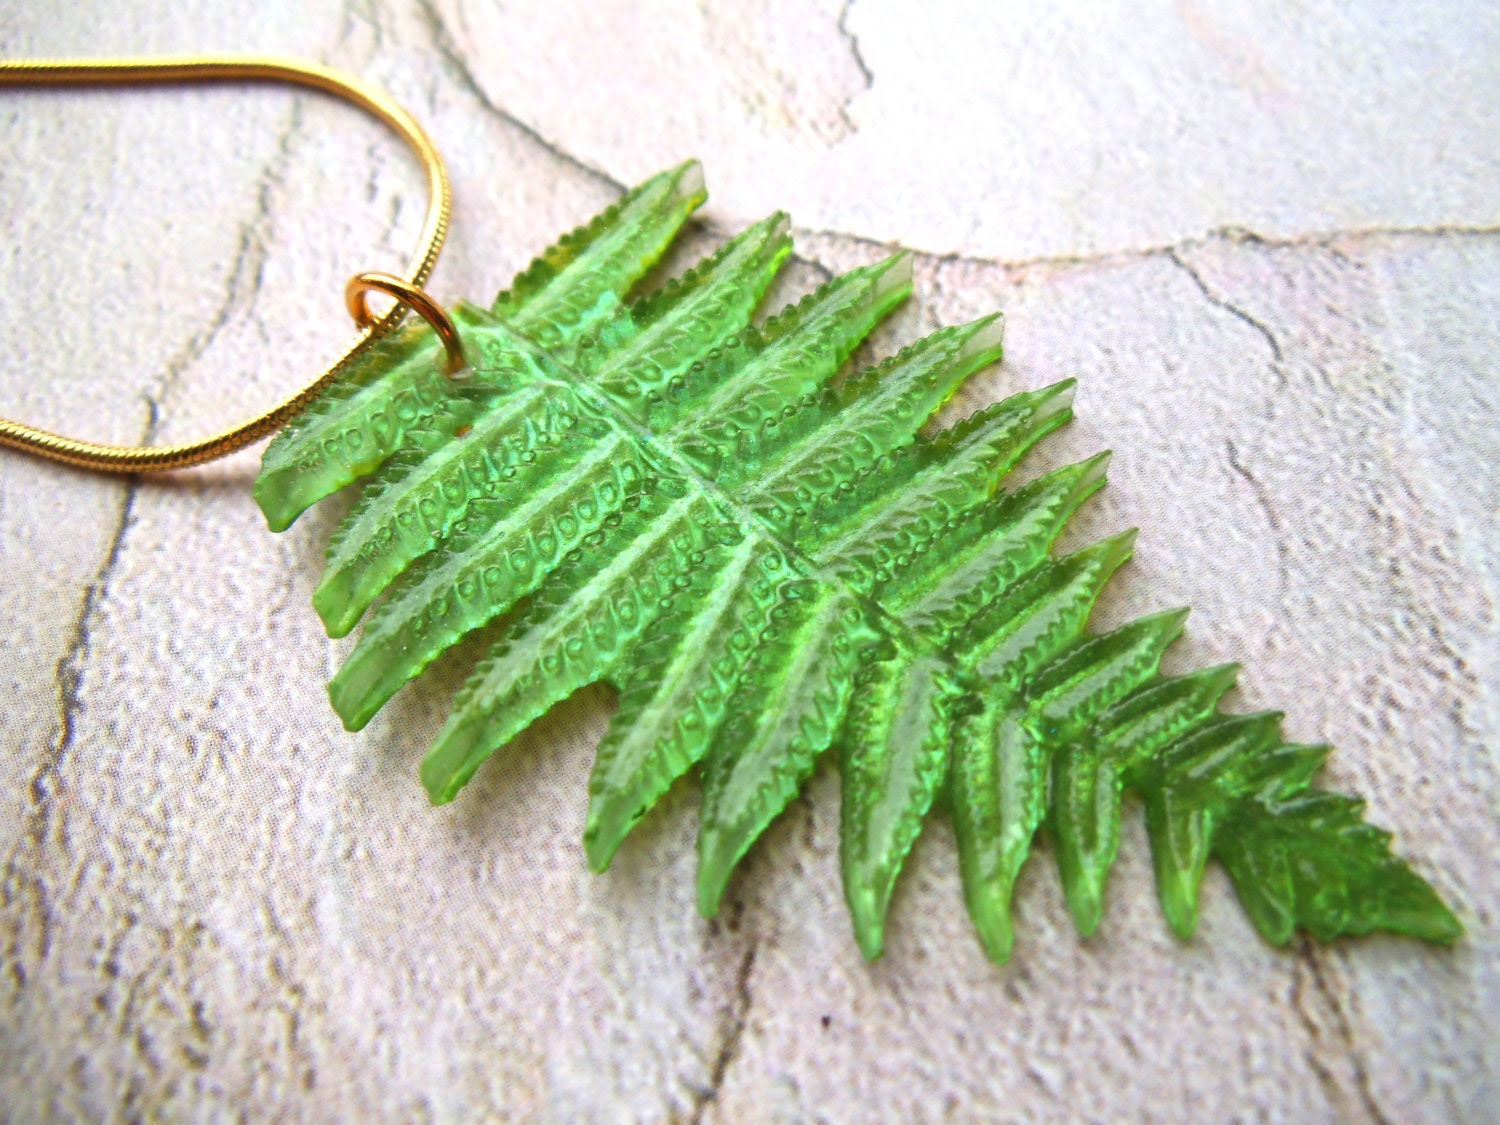 Green Leaf Necklace green necklace leaf jewelry fern necklace pendant necklace gold chain necklace fern jewelry pendant jewelry Boho - DefinitelyDifferent